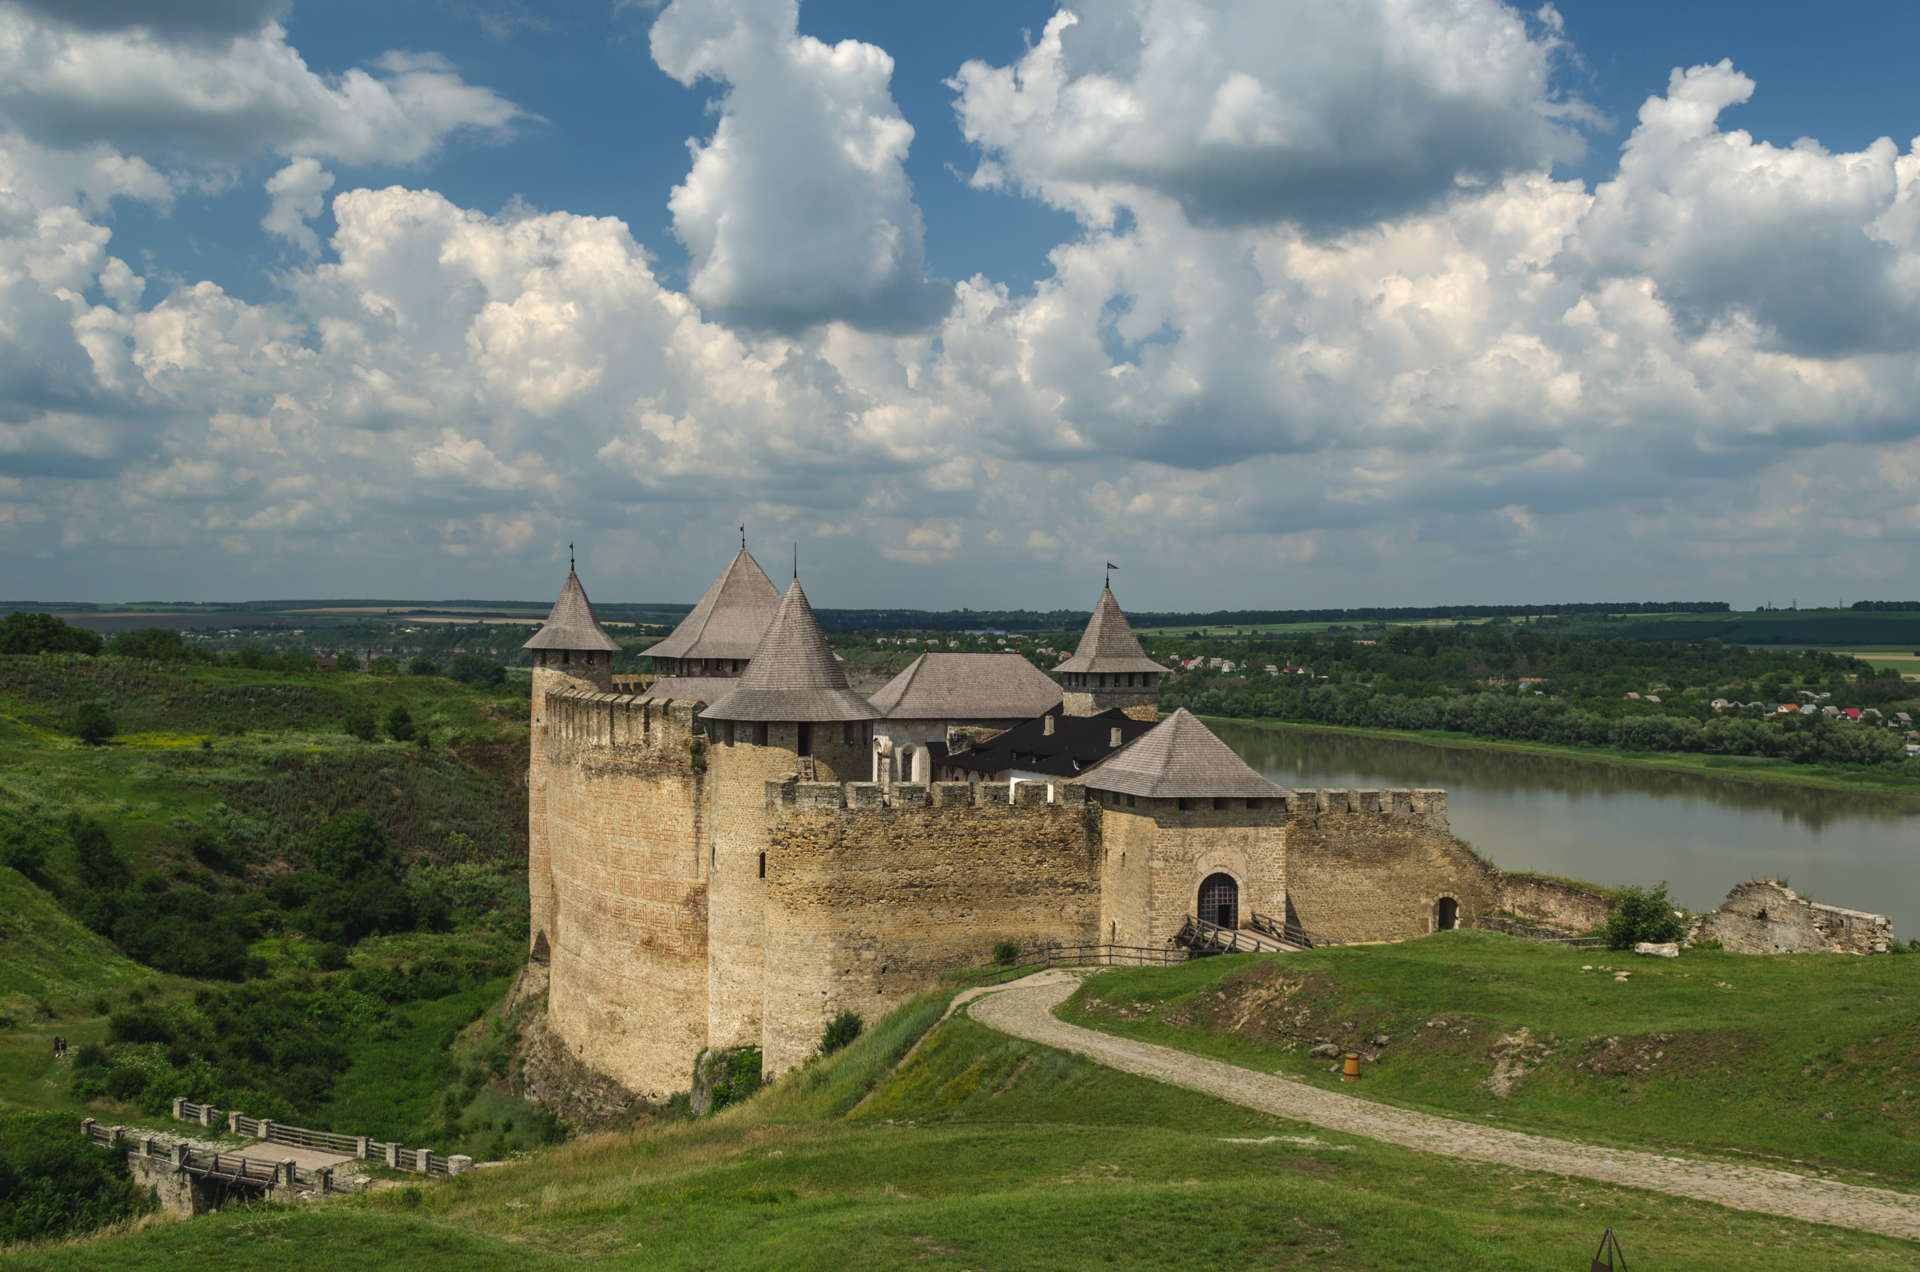 khotyn fortress, khotyn castle, seven wonders of ukraine, backpacking khotyn, how to get to khotyn, travel around ukraine, ukraine travel, drone khotyn, aerial view of khotyn, outer wall of khotyn, khotyn perimeter, khotyn travel, where to stay in khotyn, khotyn camping, khotyn wild camping